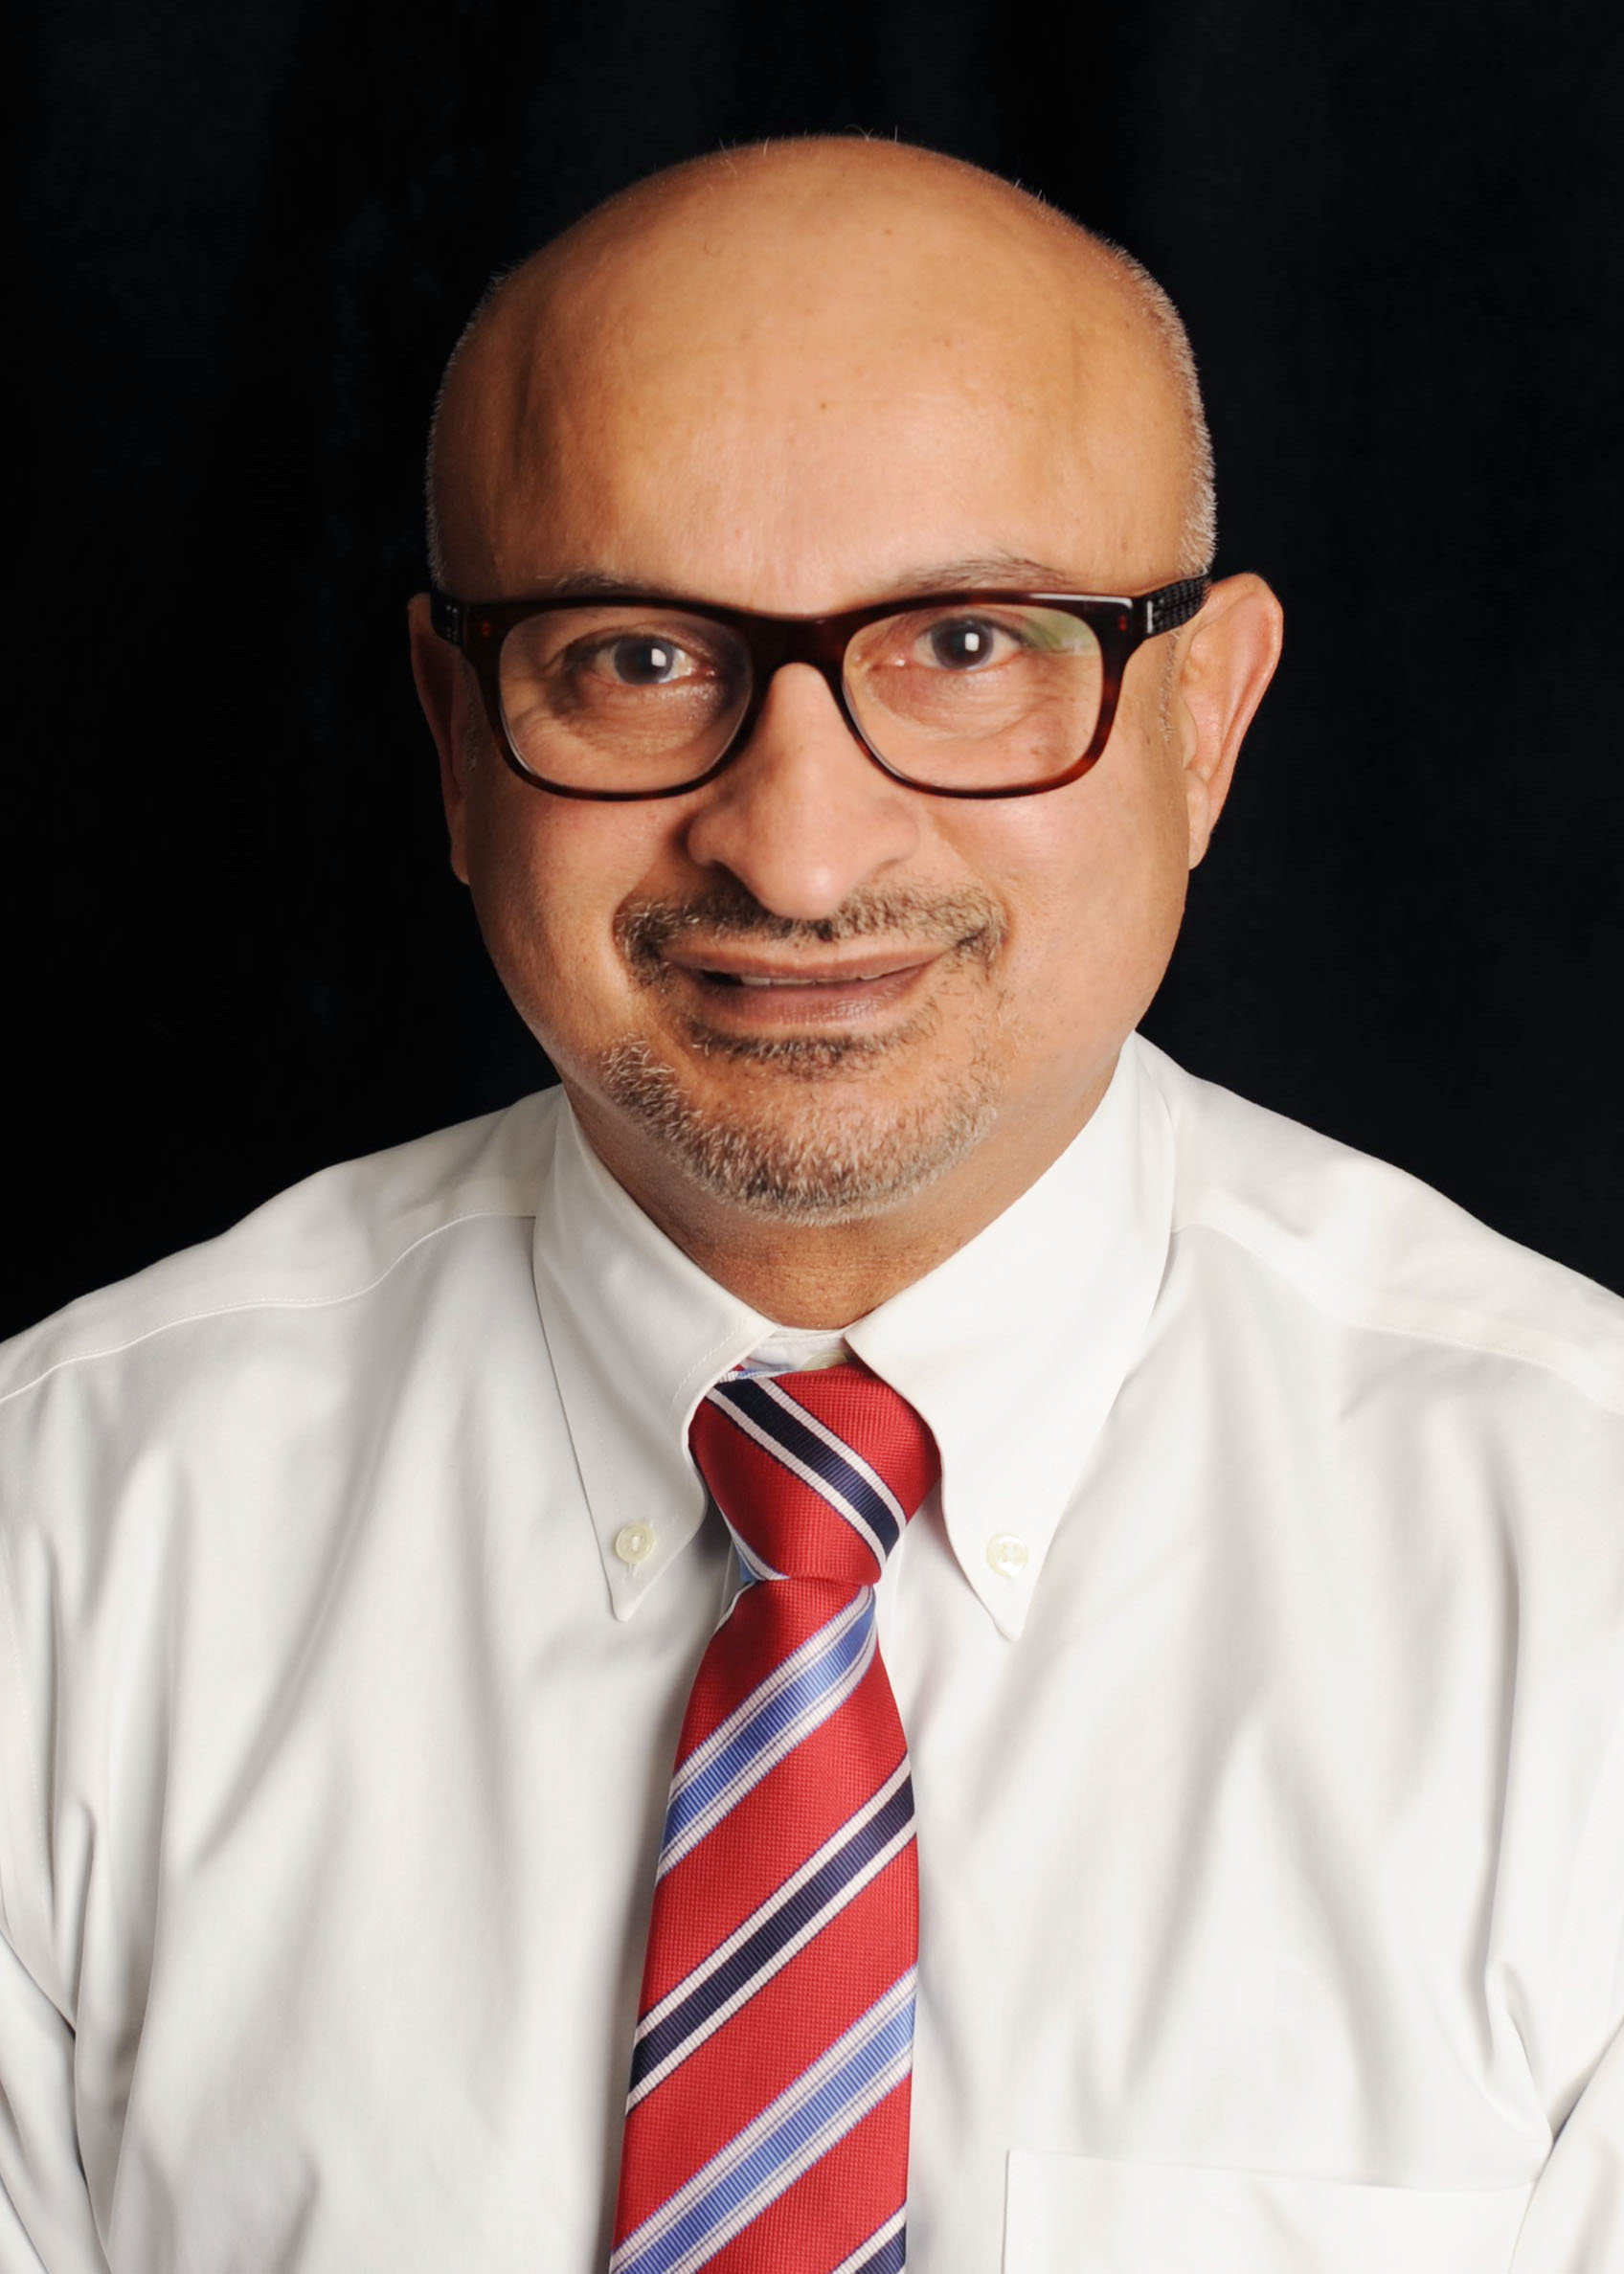 Dr. Ahmed Rehan, MD